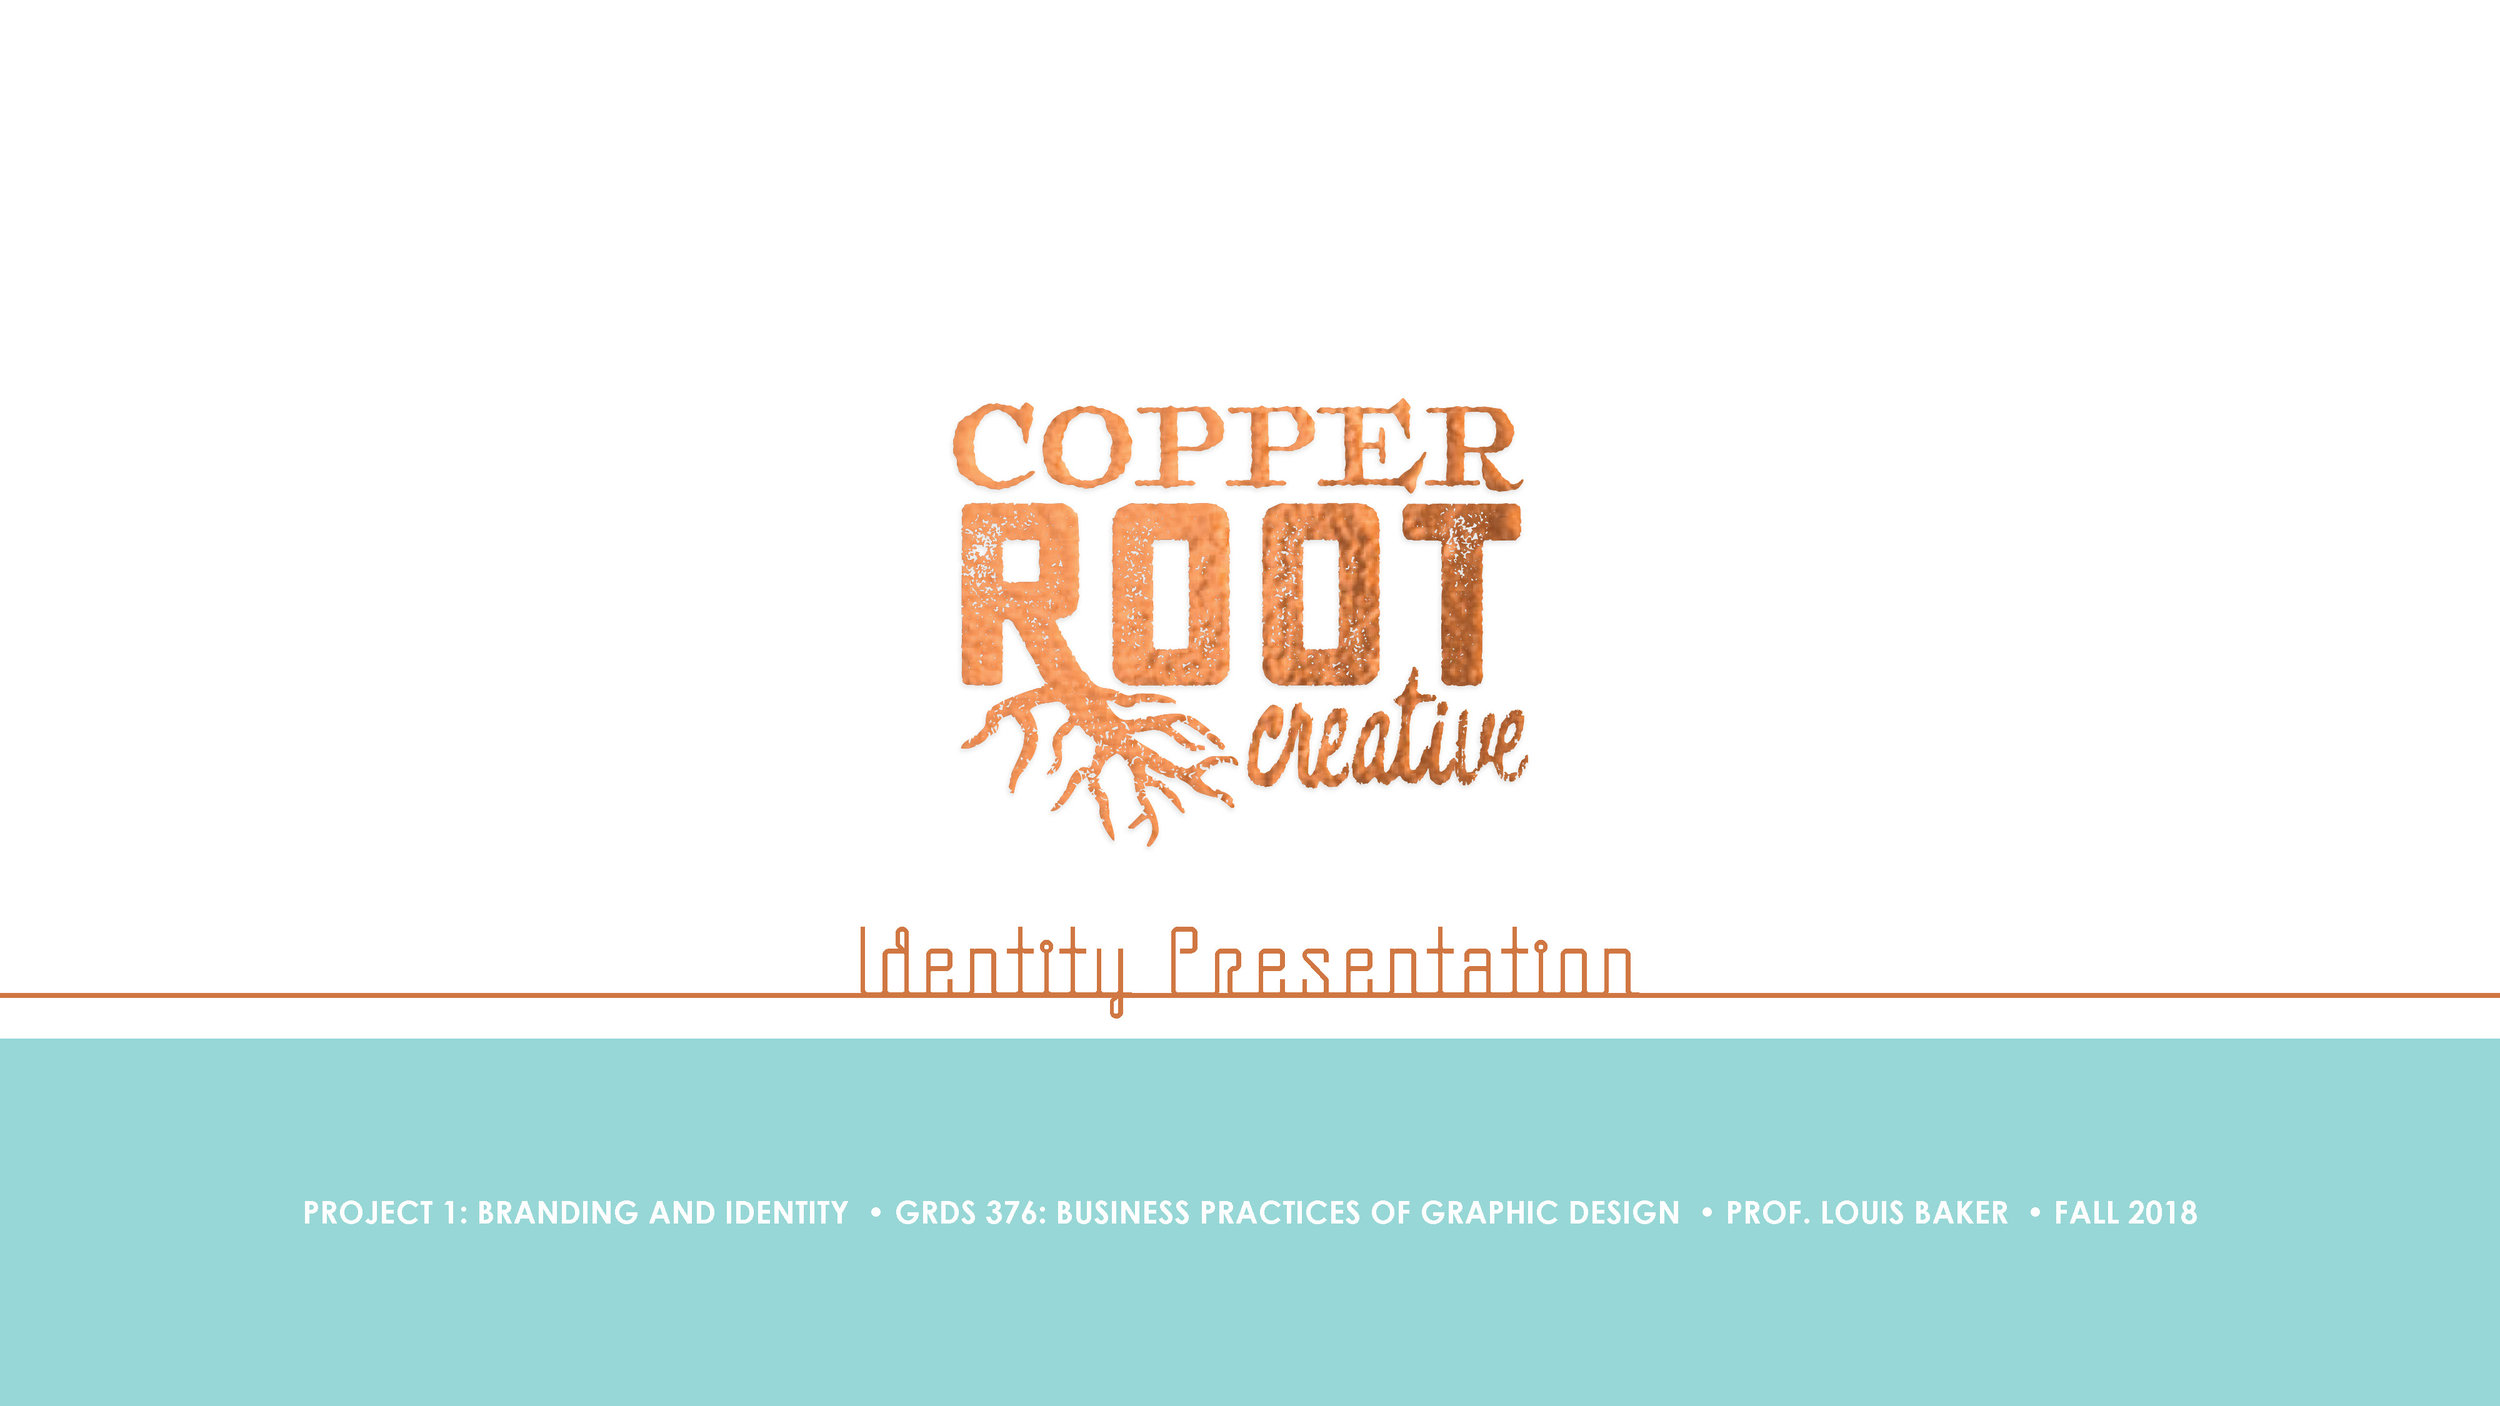 CooperRootCreative_ProjA_Presentation_resubmit_Page_01.jpg